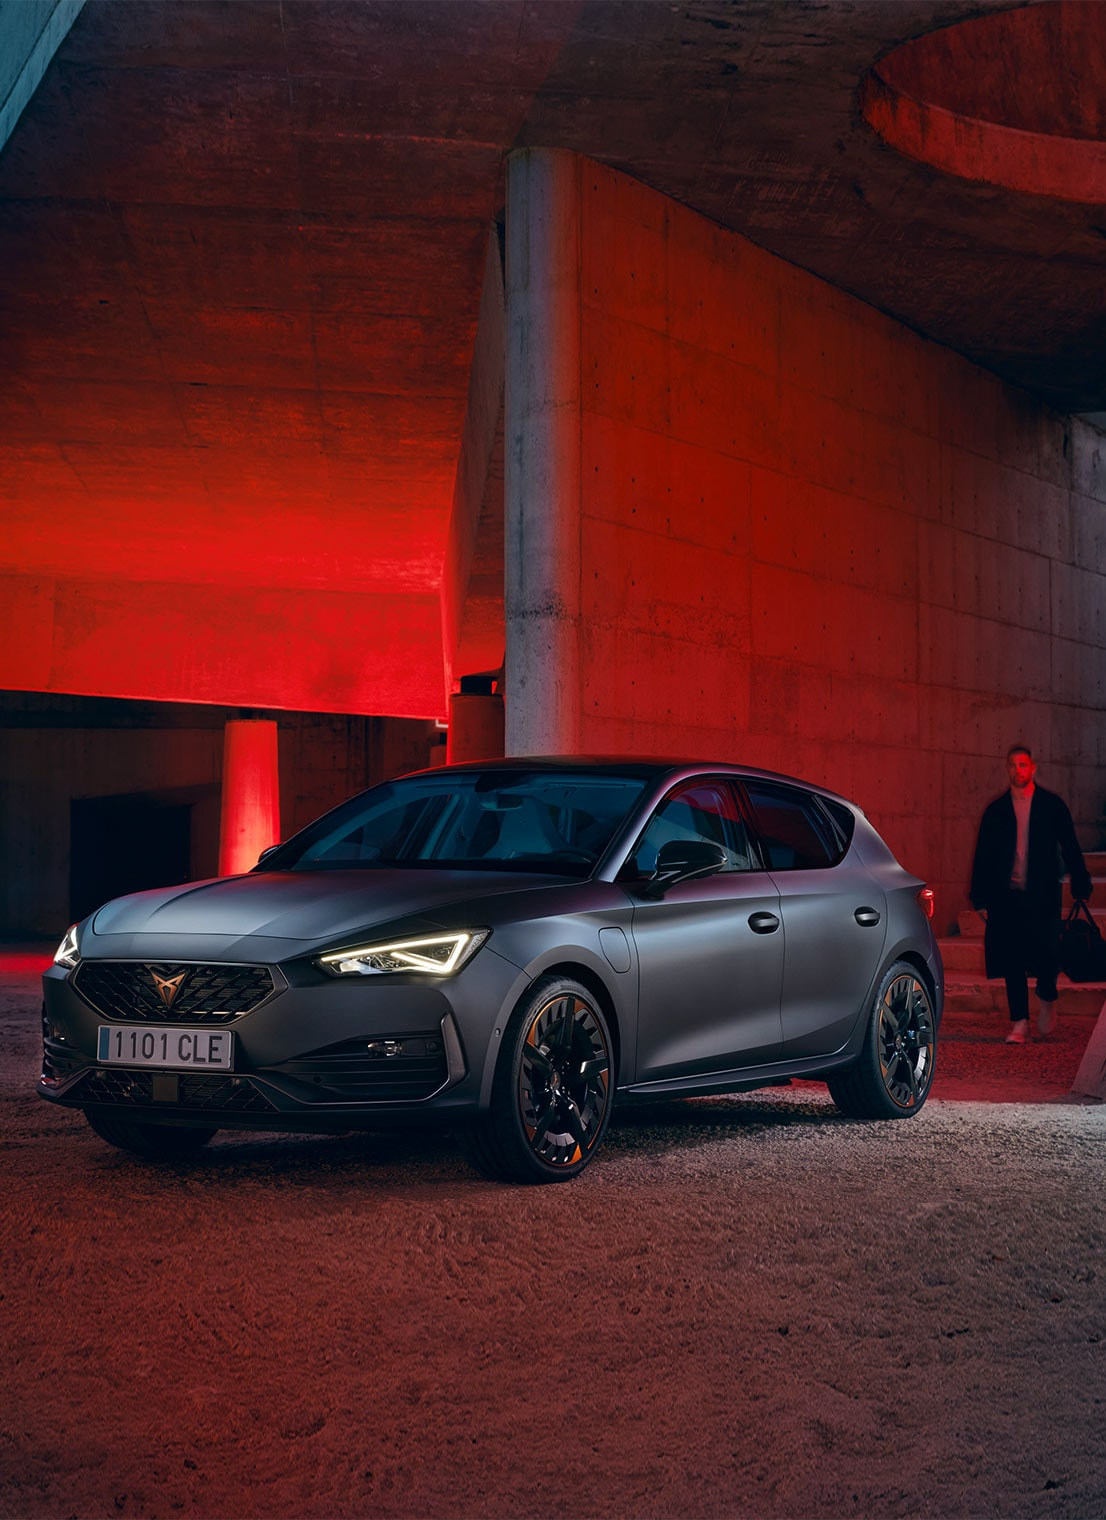 CUPRA Formentor 2020 with copper alloy wheels in a garage